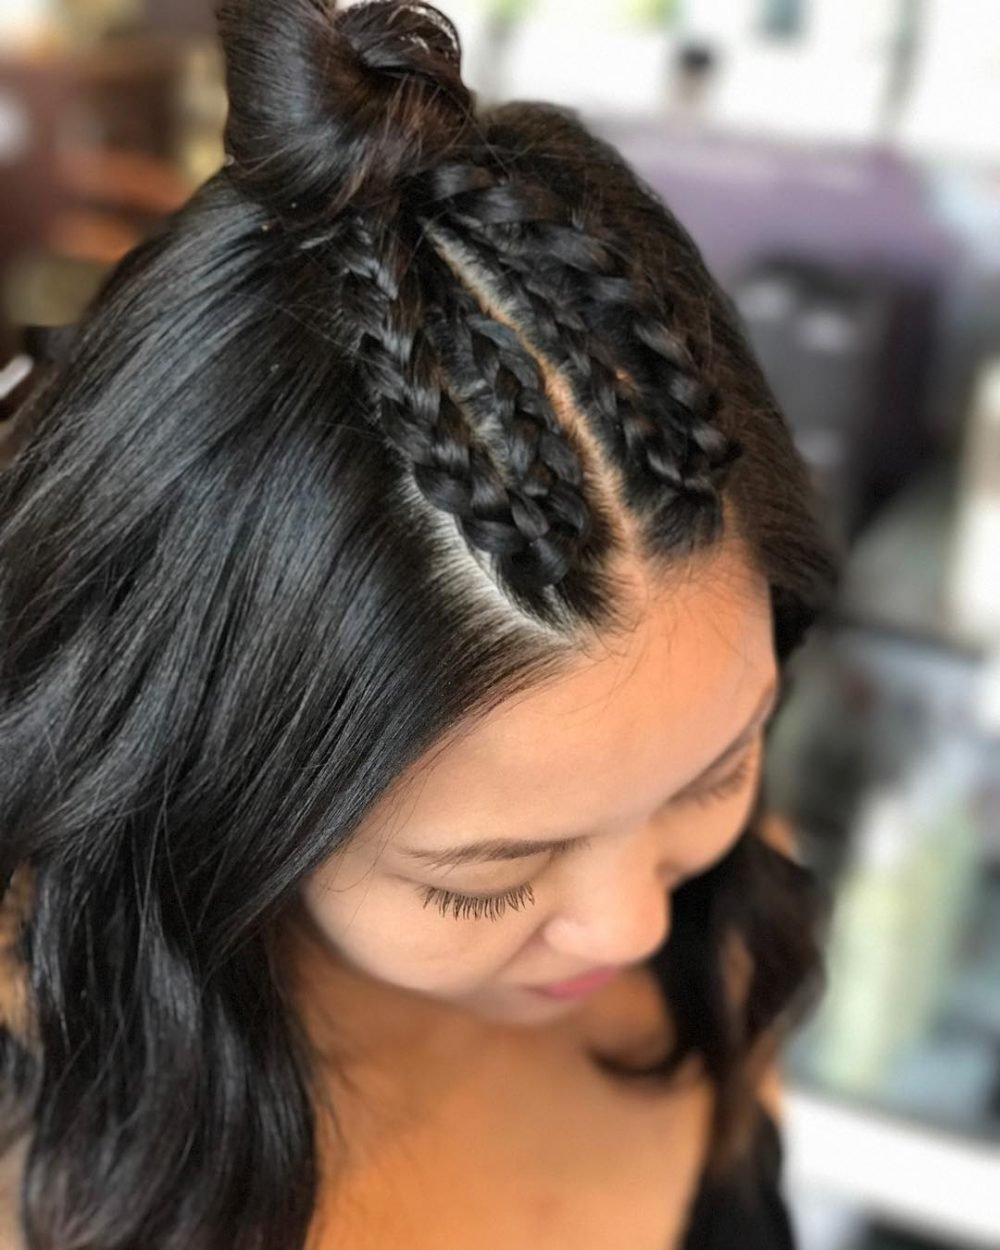 New 37 Cute French Braid Hairstyles For 2019 Ideas With Pictures